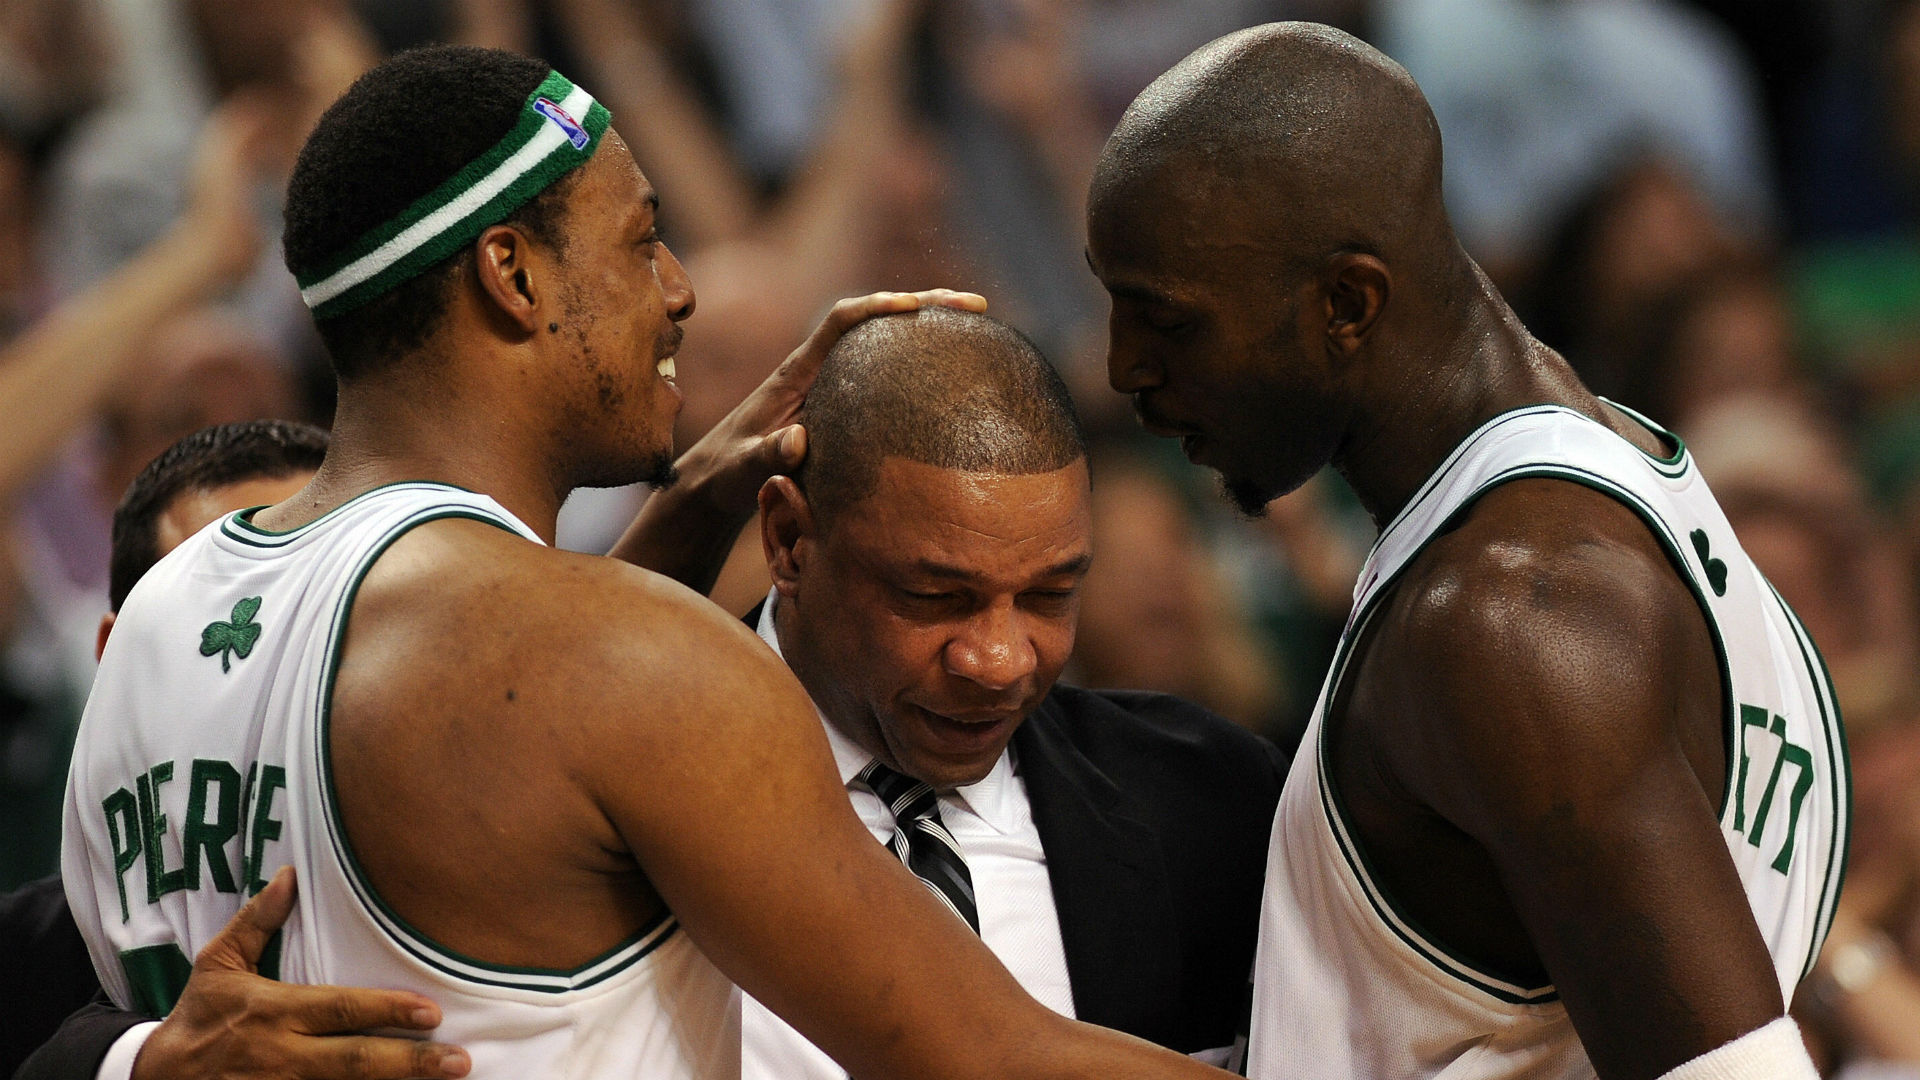 Kevin Garnett reunites with Doc Rivers Paul Pierce as Clippers